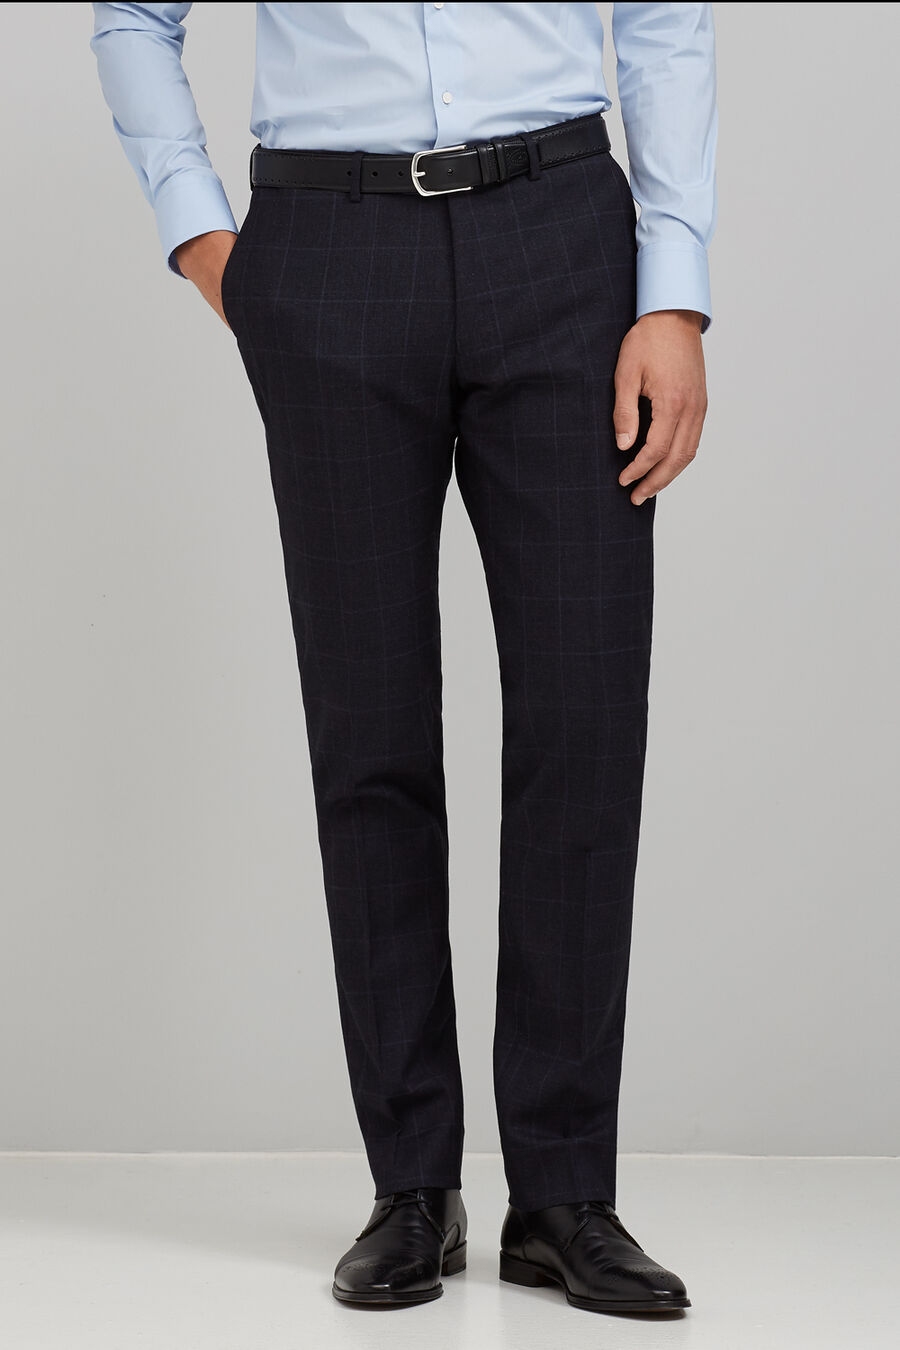 Tailor fit separate trousers